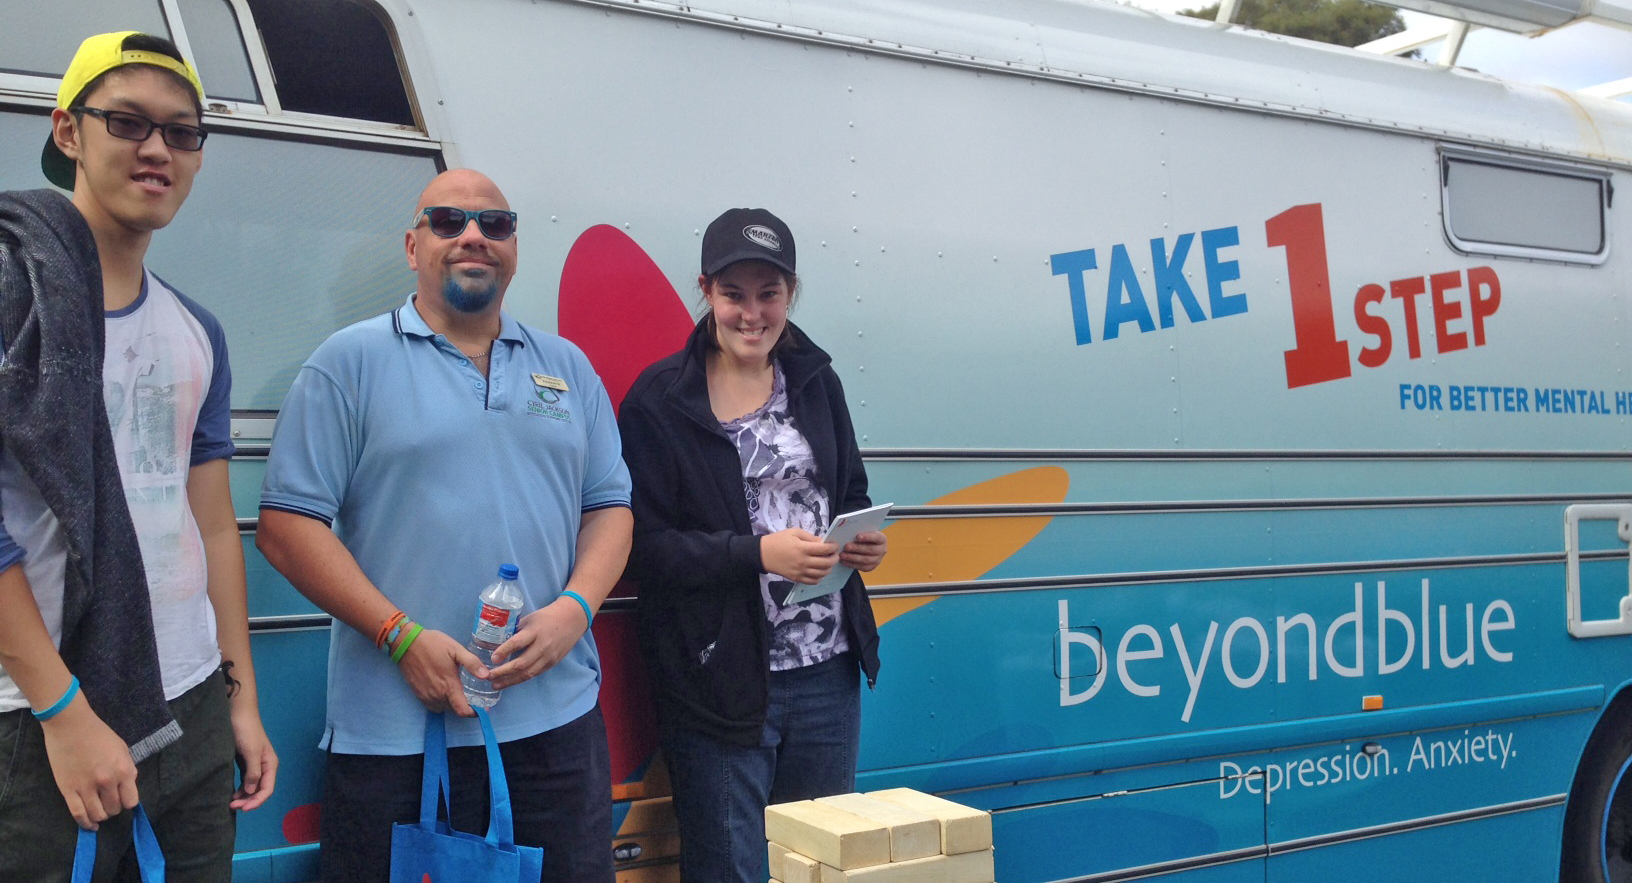 The bus was popular at Cyril Jackson's school health expo.